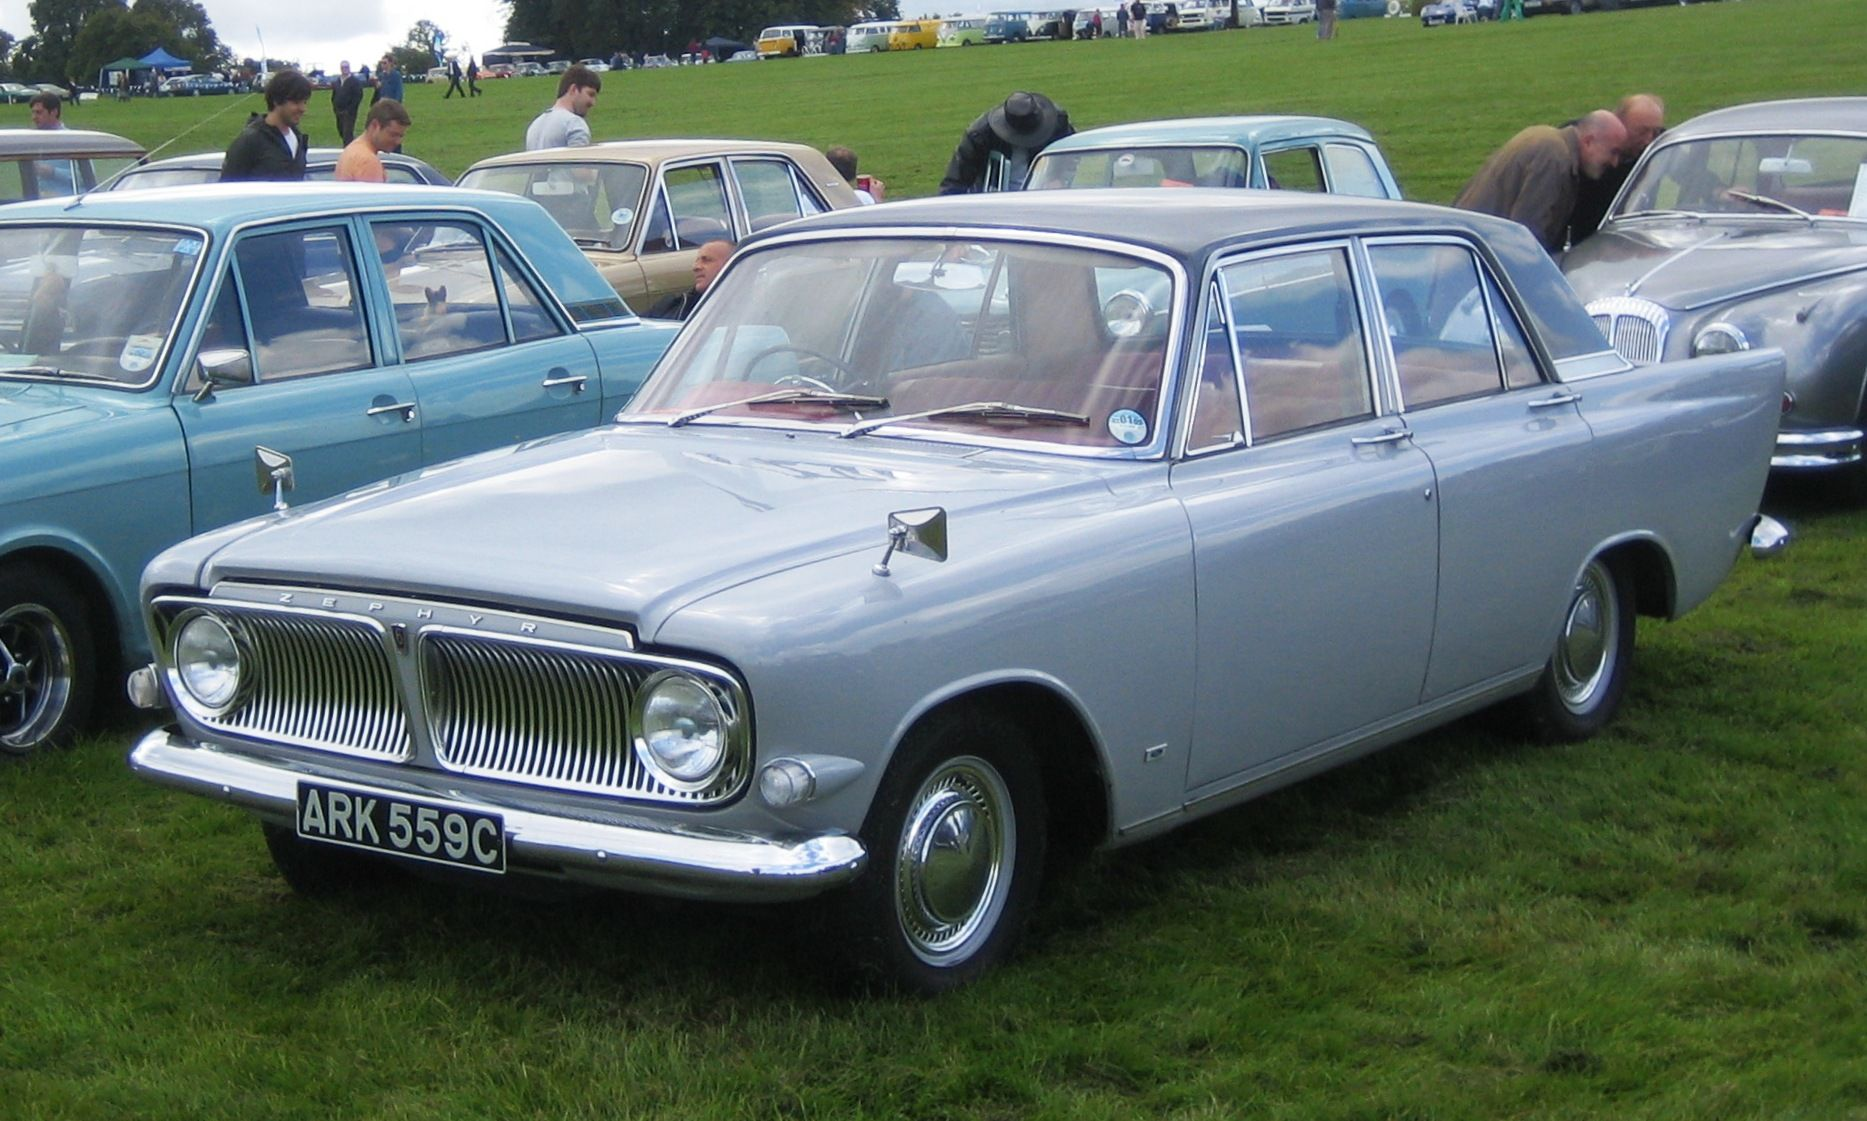 Ford Zephyr 6 | British cars | Pinterest | Ford zephyr, Ford and Cars